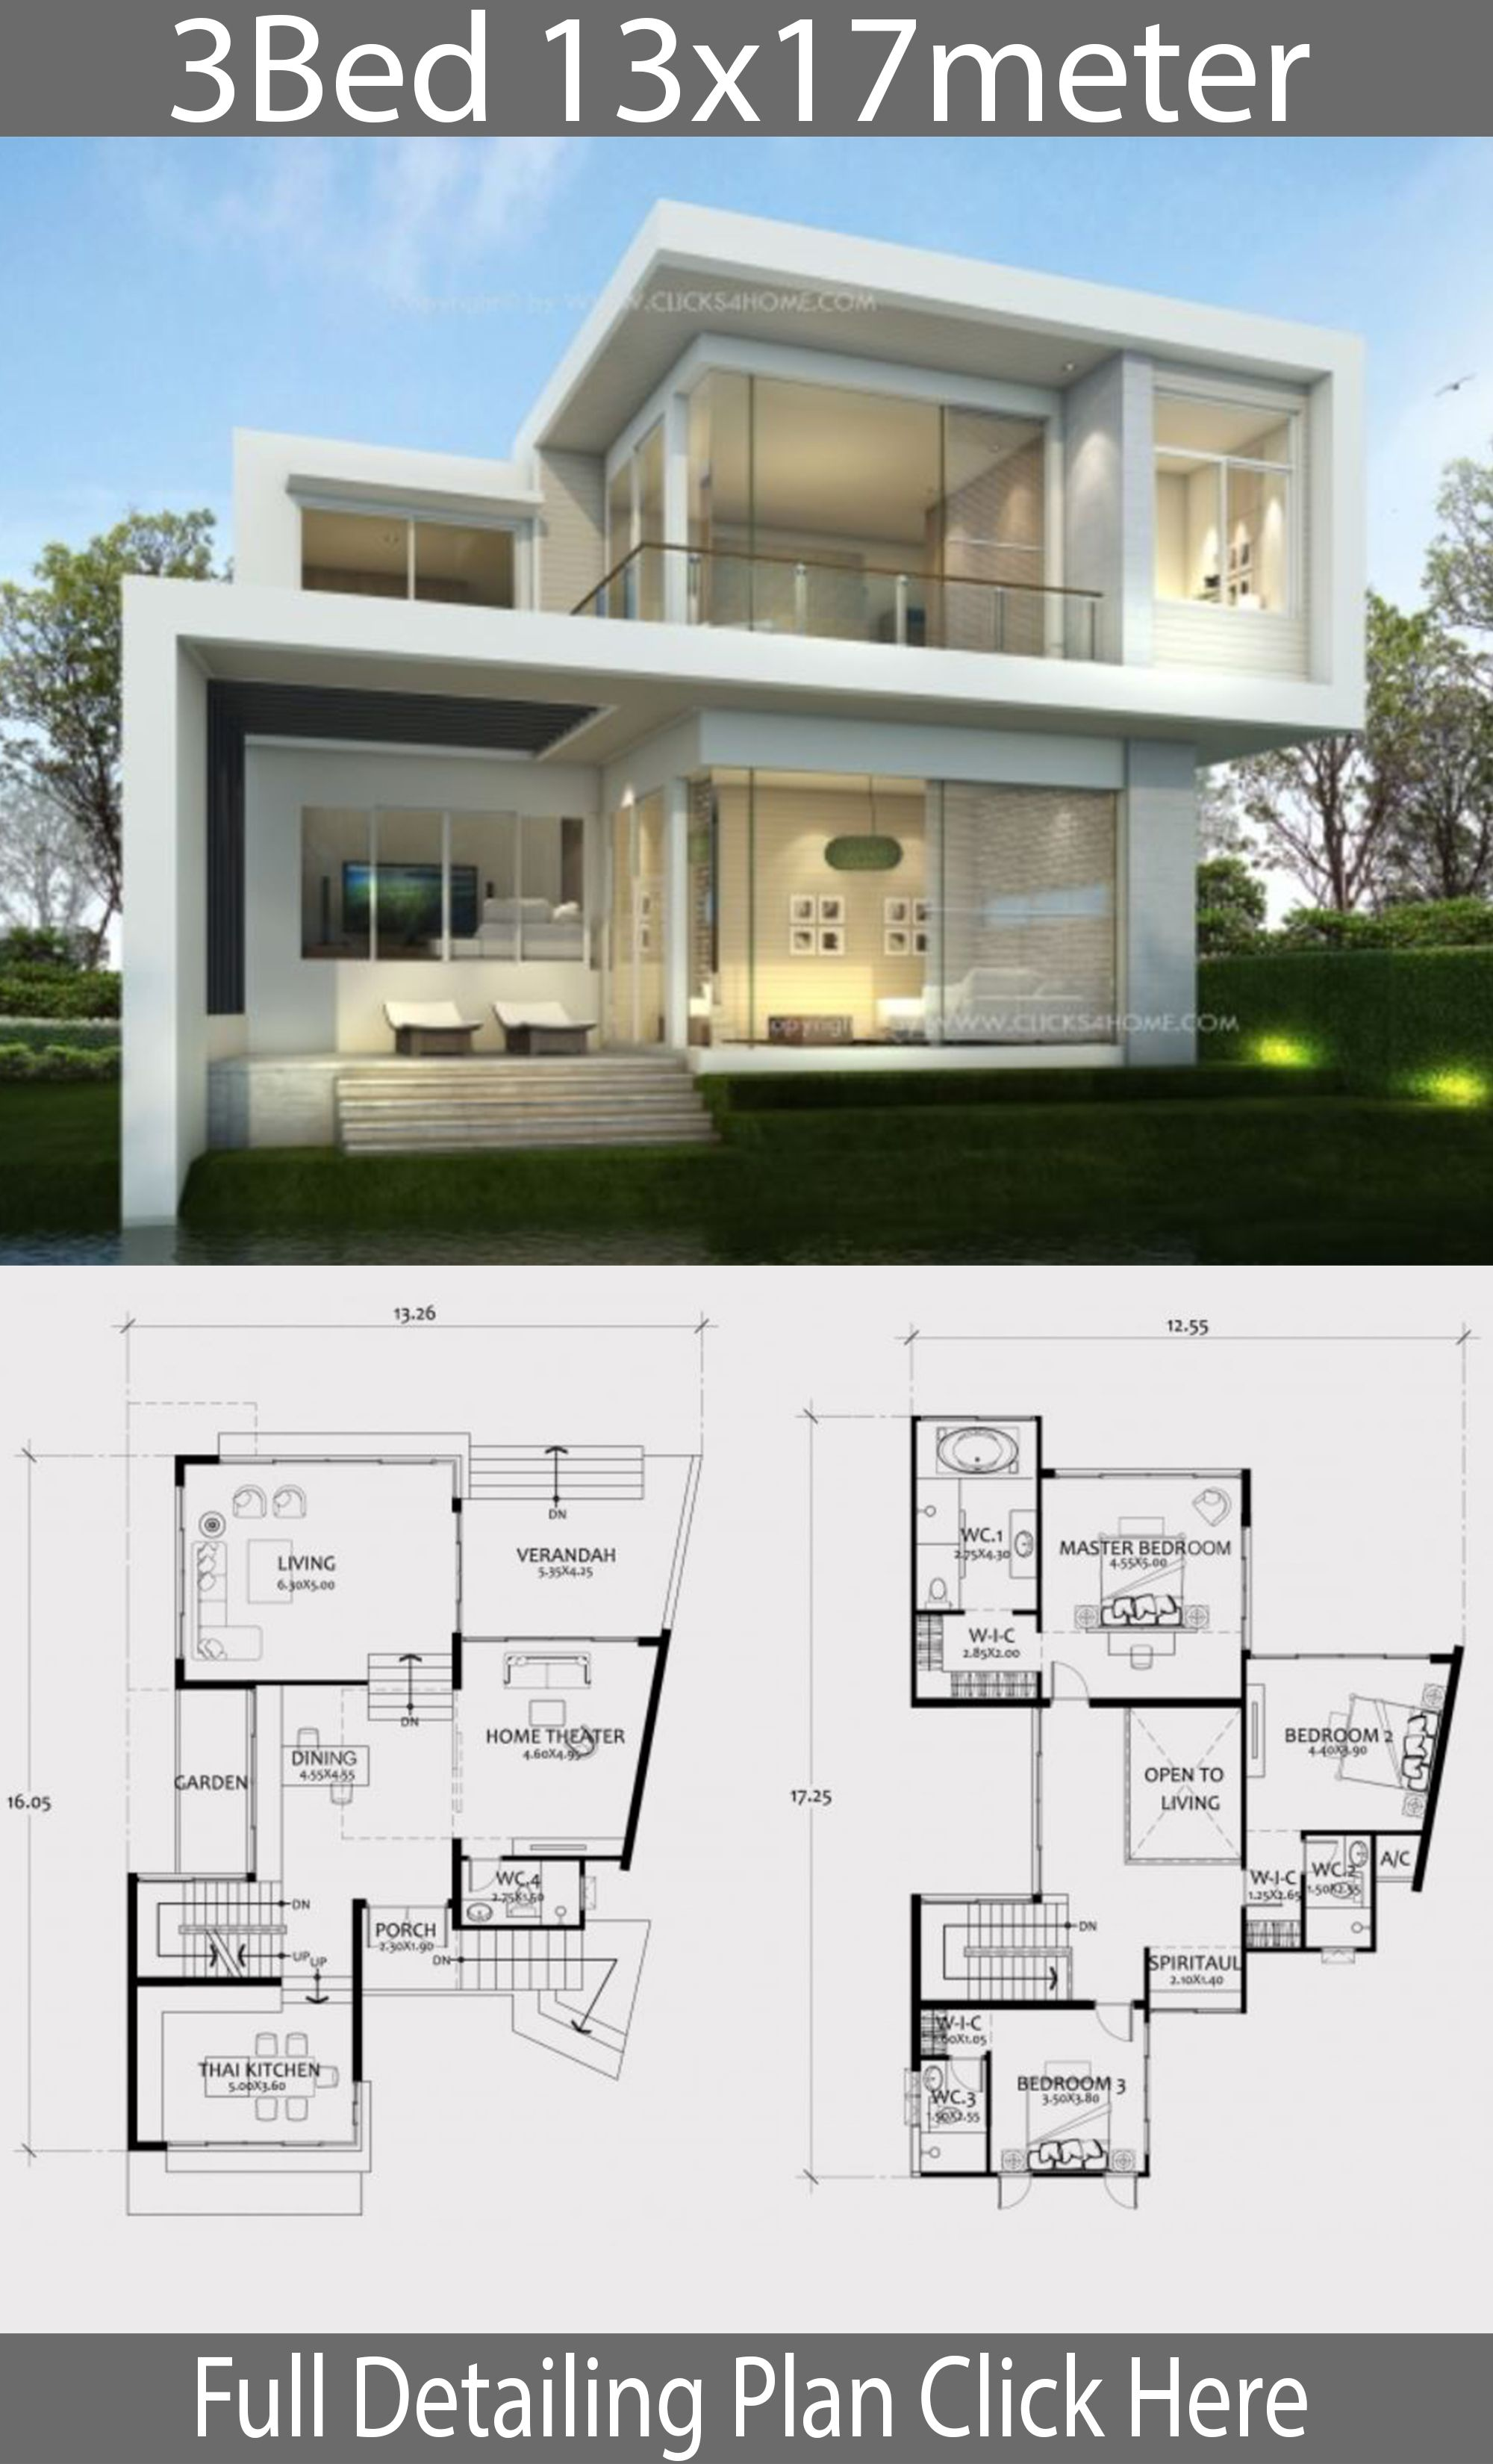 Home Design Plan 13x17m With 3 Bedroom With Images House